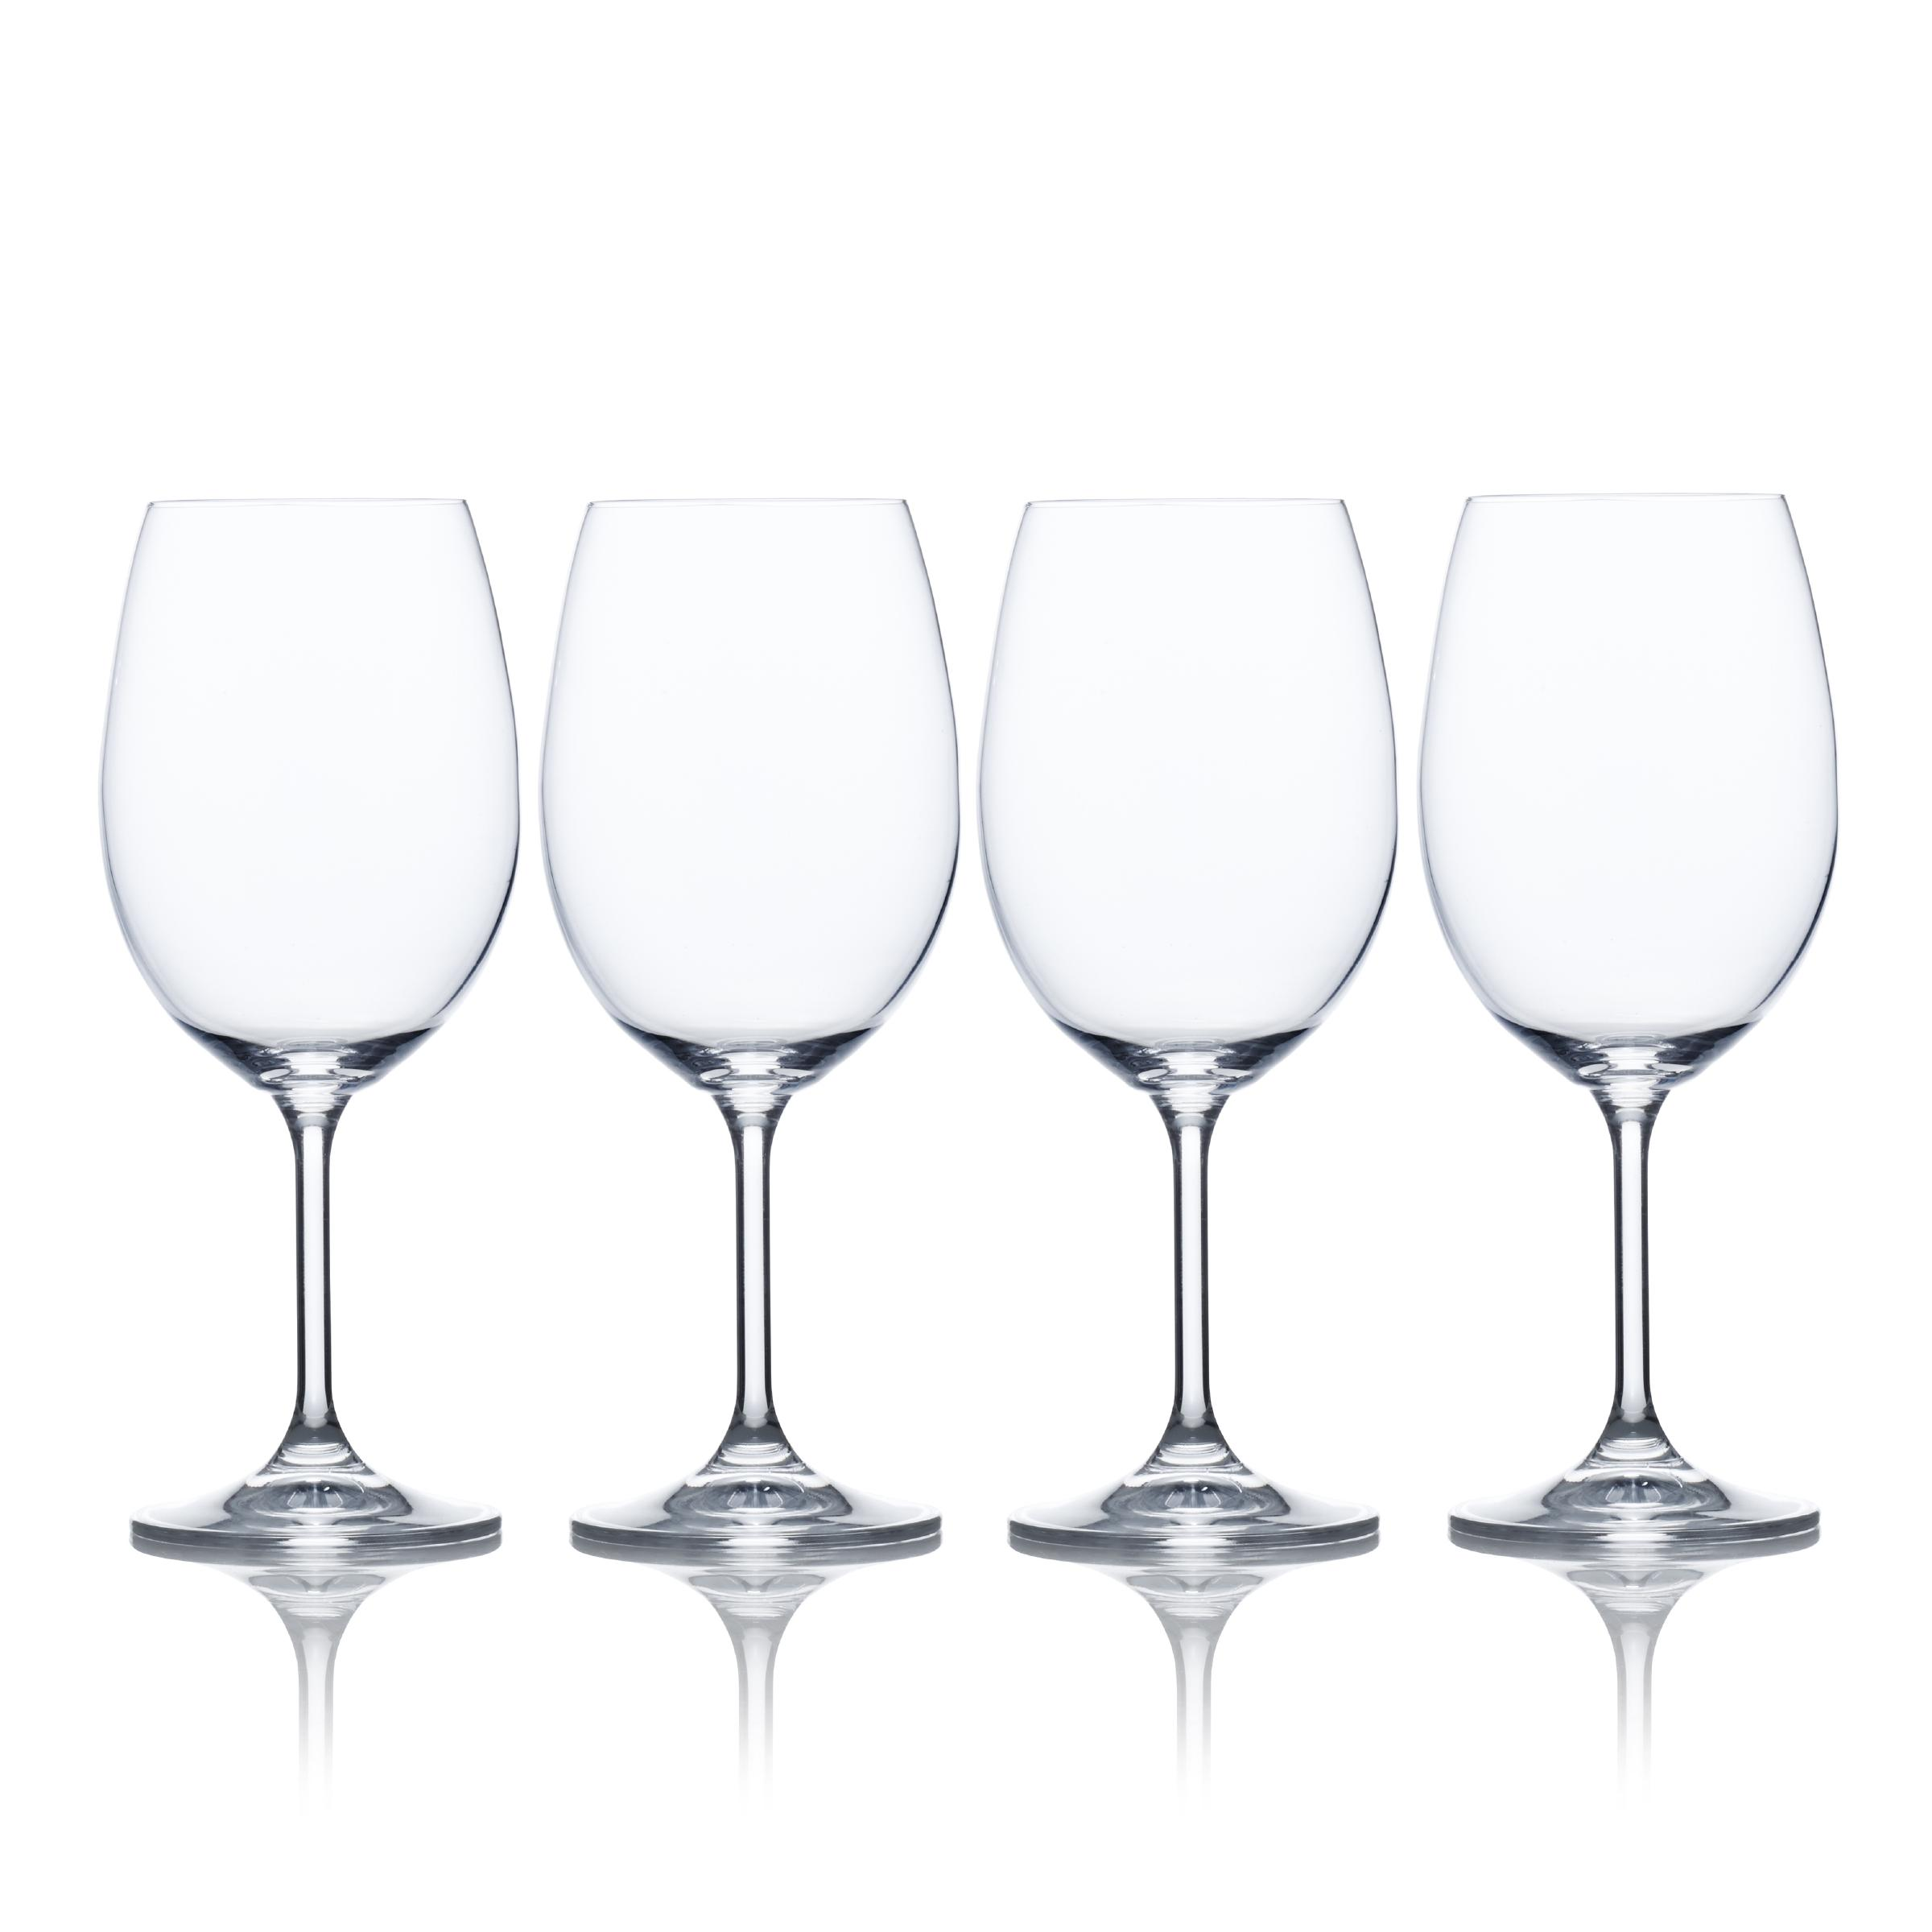 mesmerizing own mikasa wine glasses